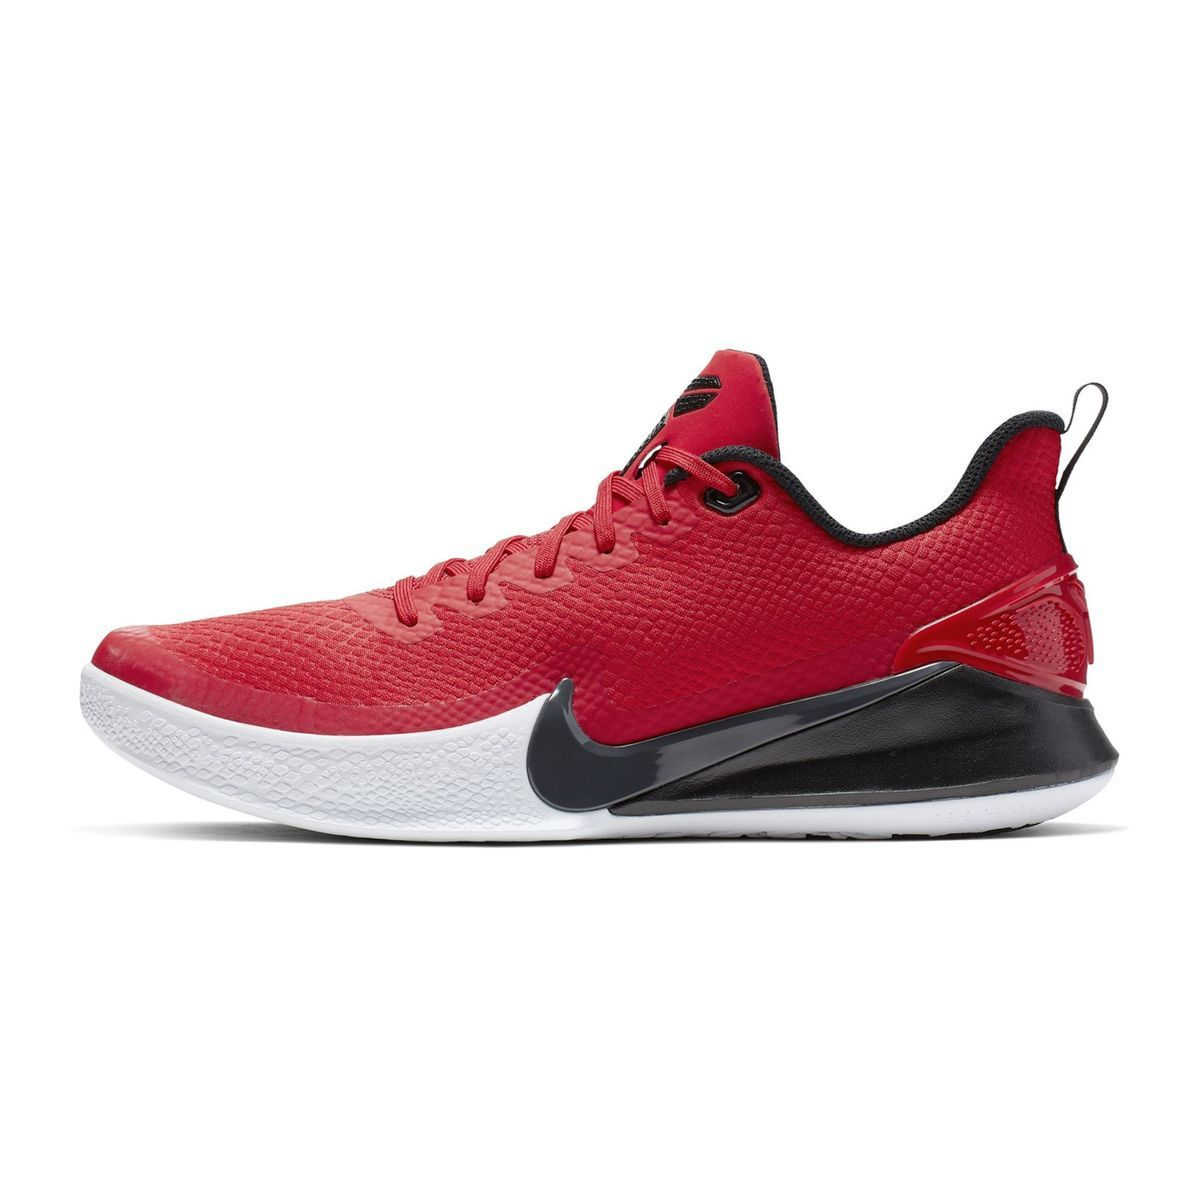 acheter populaire f4edf def21 Chaussures basketball Nike Mamba Focus Rouge | Products ...